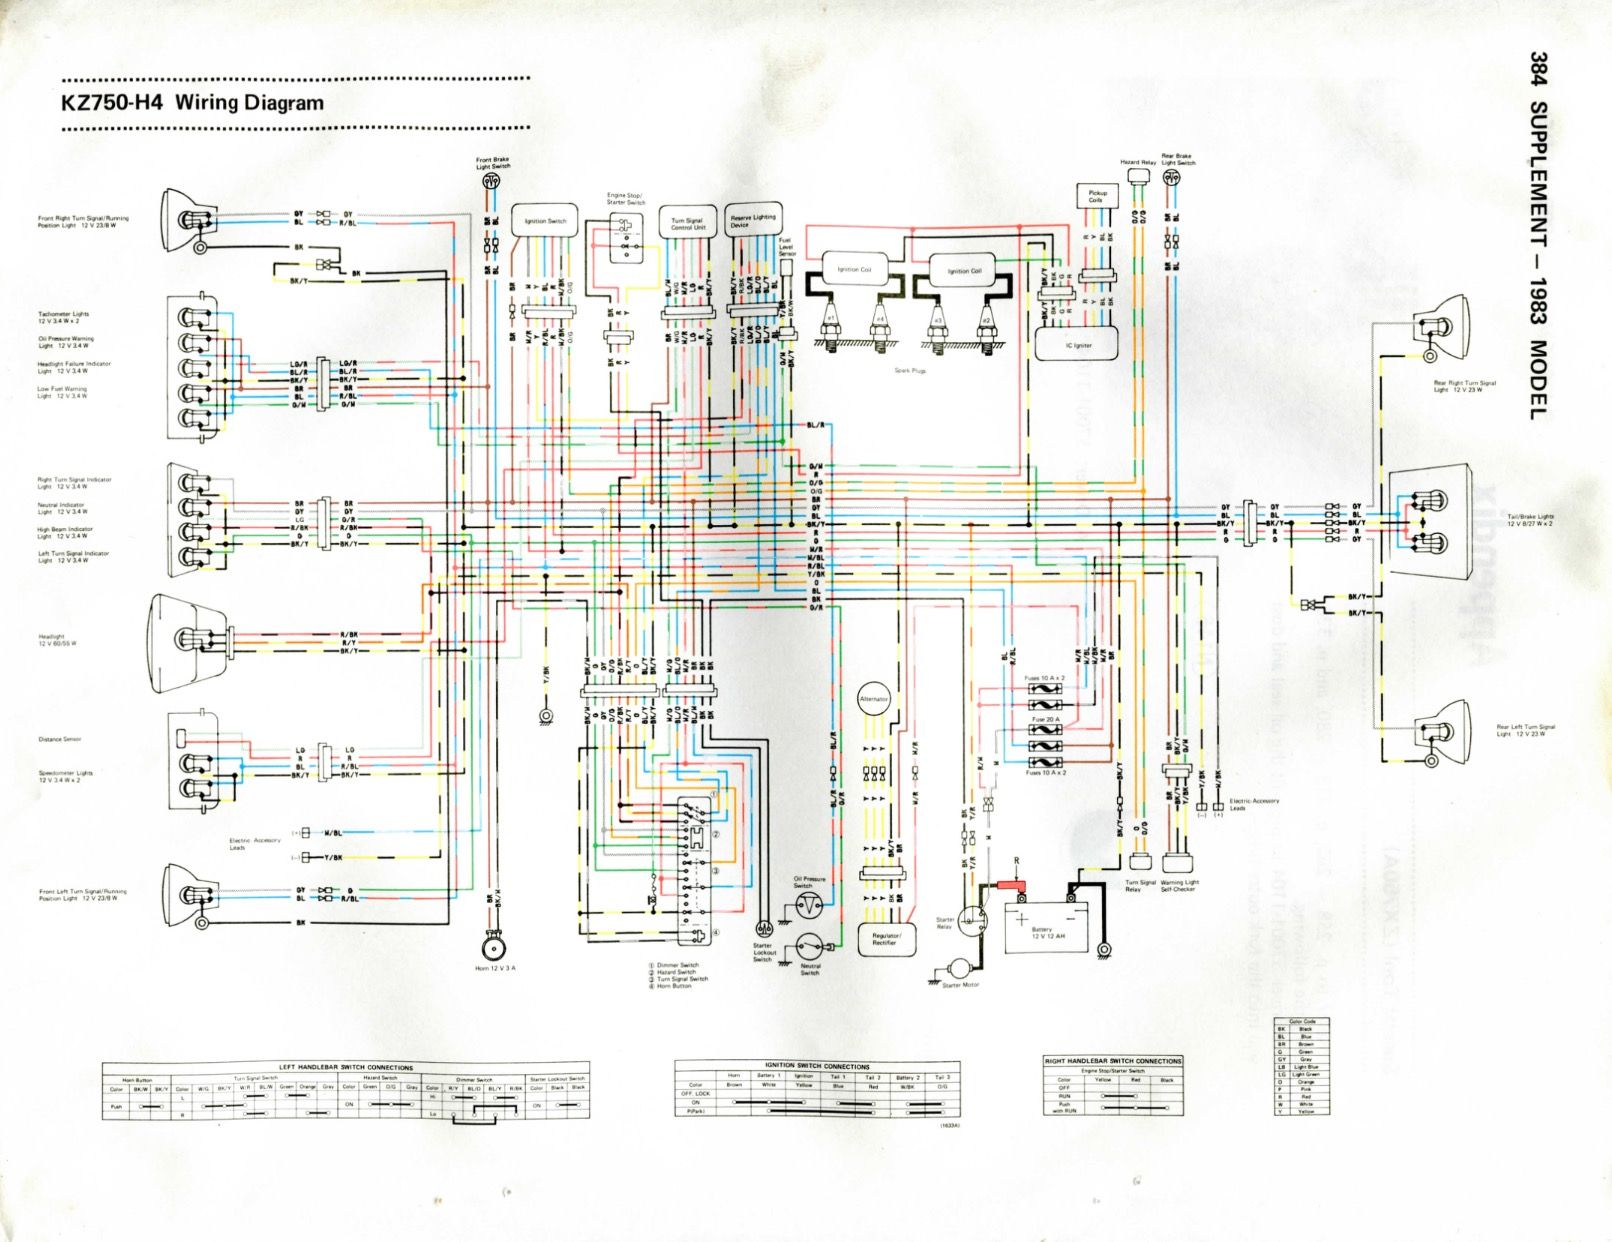 1983 Kawasaki KZ750 H4 LTD wiring diagram, highly utilized ... on xv920 wiring diagram, er6n wiring diagram, kz400 wiring diagram, fj1100 wiring diagram, vulcan 750 wiring diagram, z1000 wiring diagram, kawasaki wiring diagram, kz1000 wiring diagram, kz900 wiring diagram, kz650 wiring diagram, ke175 wiring diagram, zx600 wiring diagram, gs1000 wiring diagram, vulcan 1500 wiring diagram, zl1000 wiring diagram, ninja 250r wiring diagram, xj550 wiring diagram, kz200 wiring diagram, ex250 wiring diagram, xs850 wiring diagram,